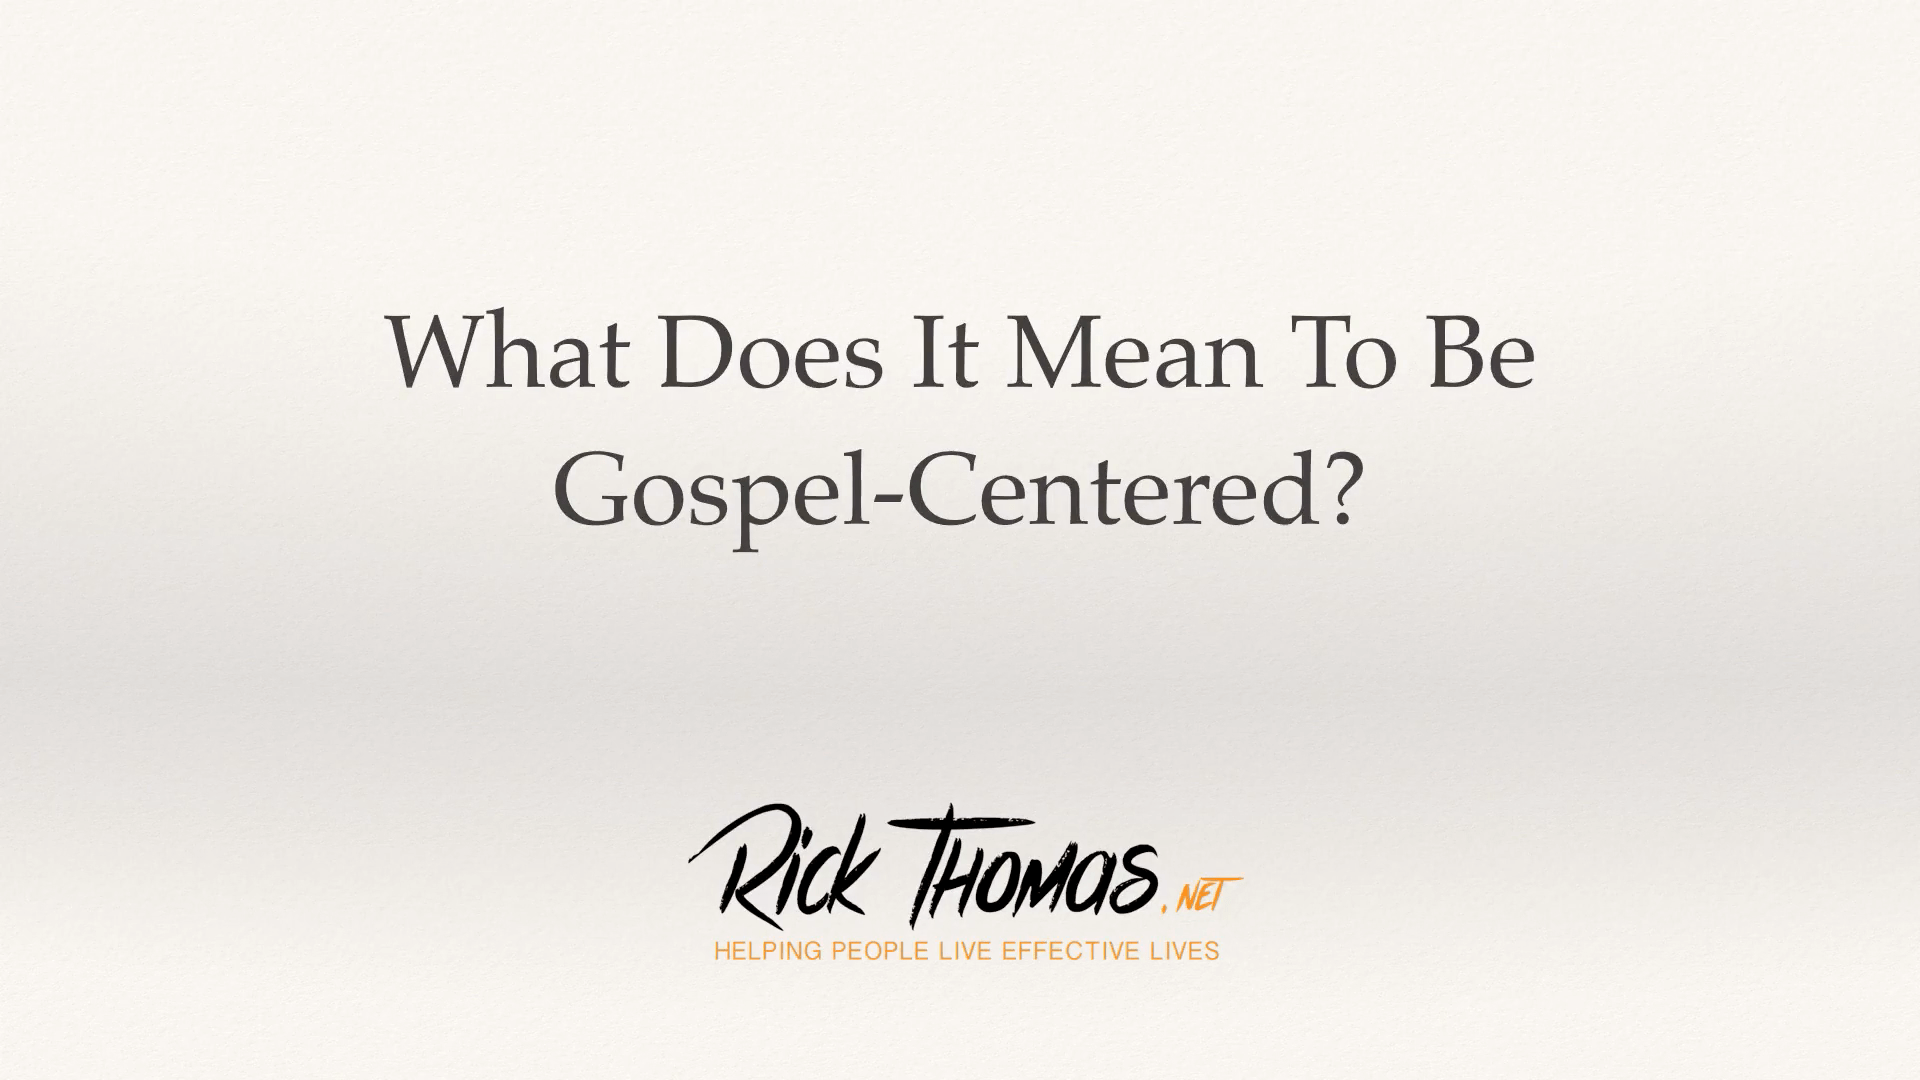 What Does It Mean to Be Gospel-Centered?